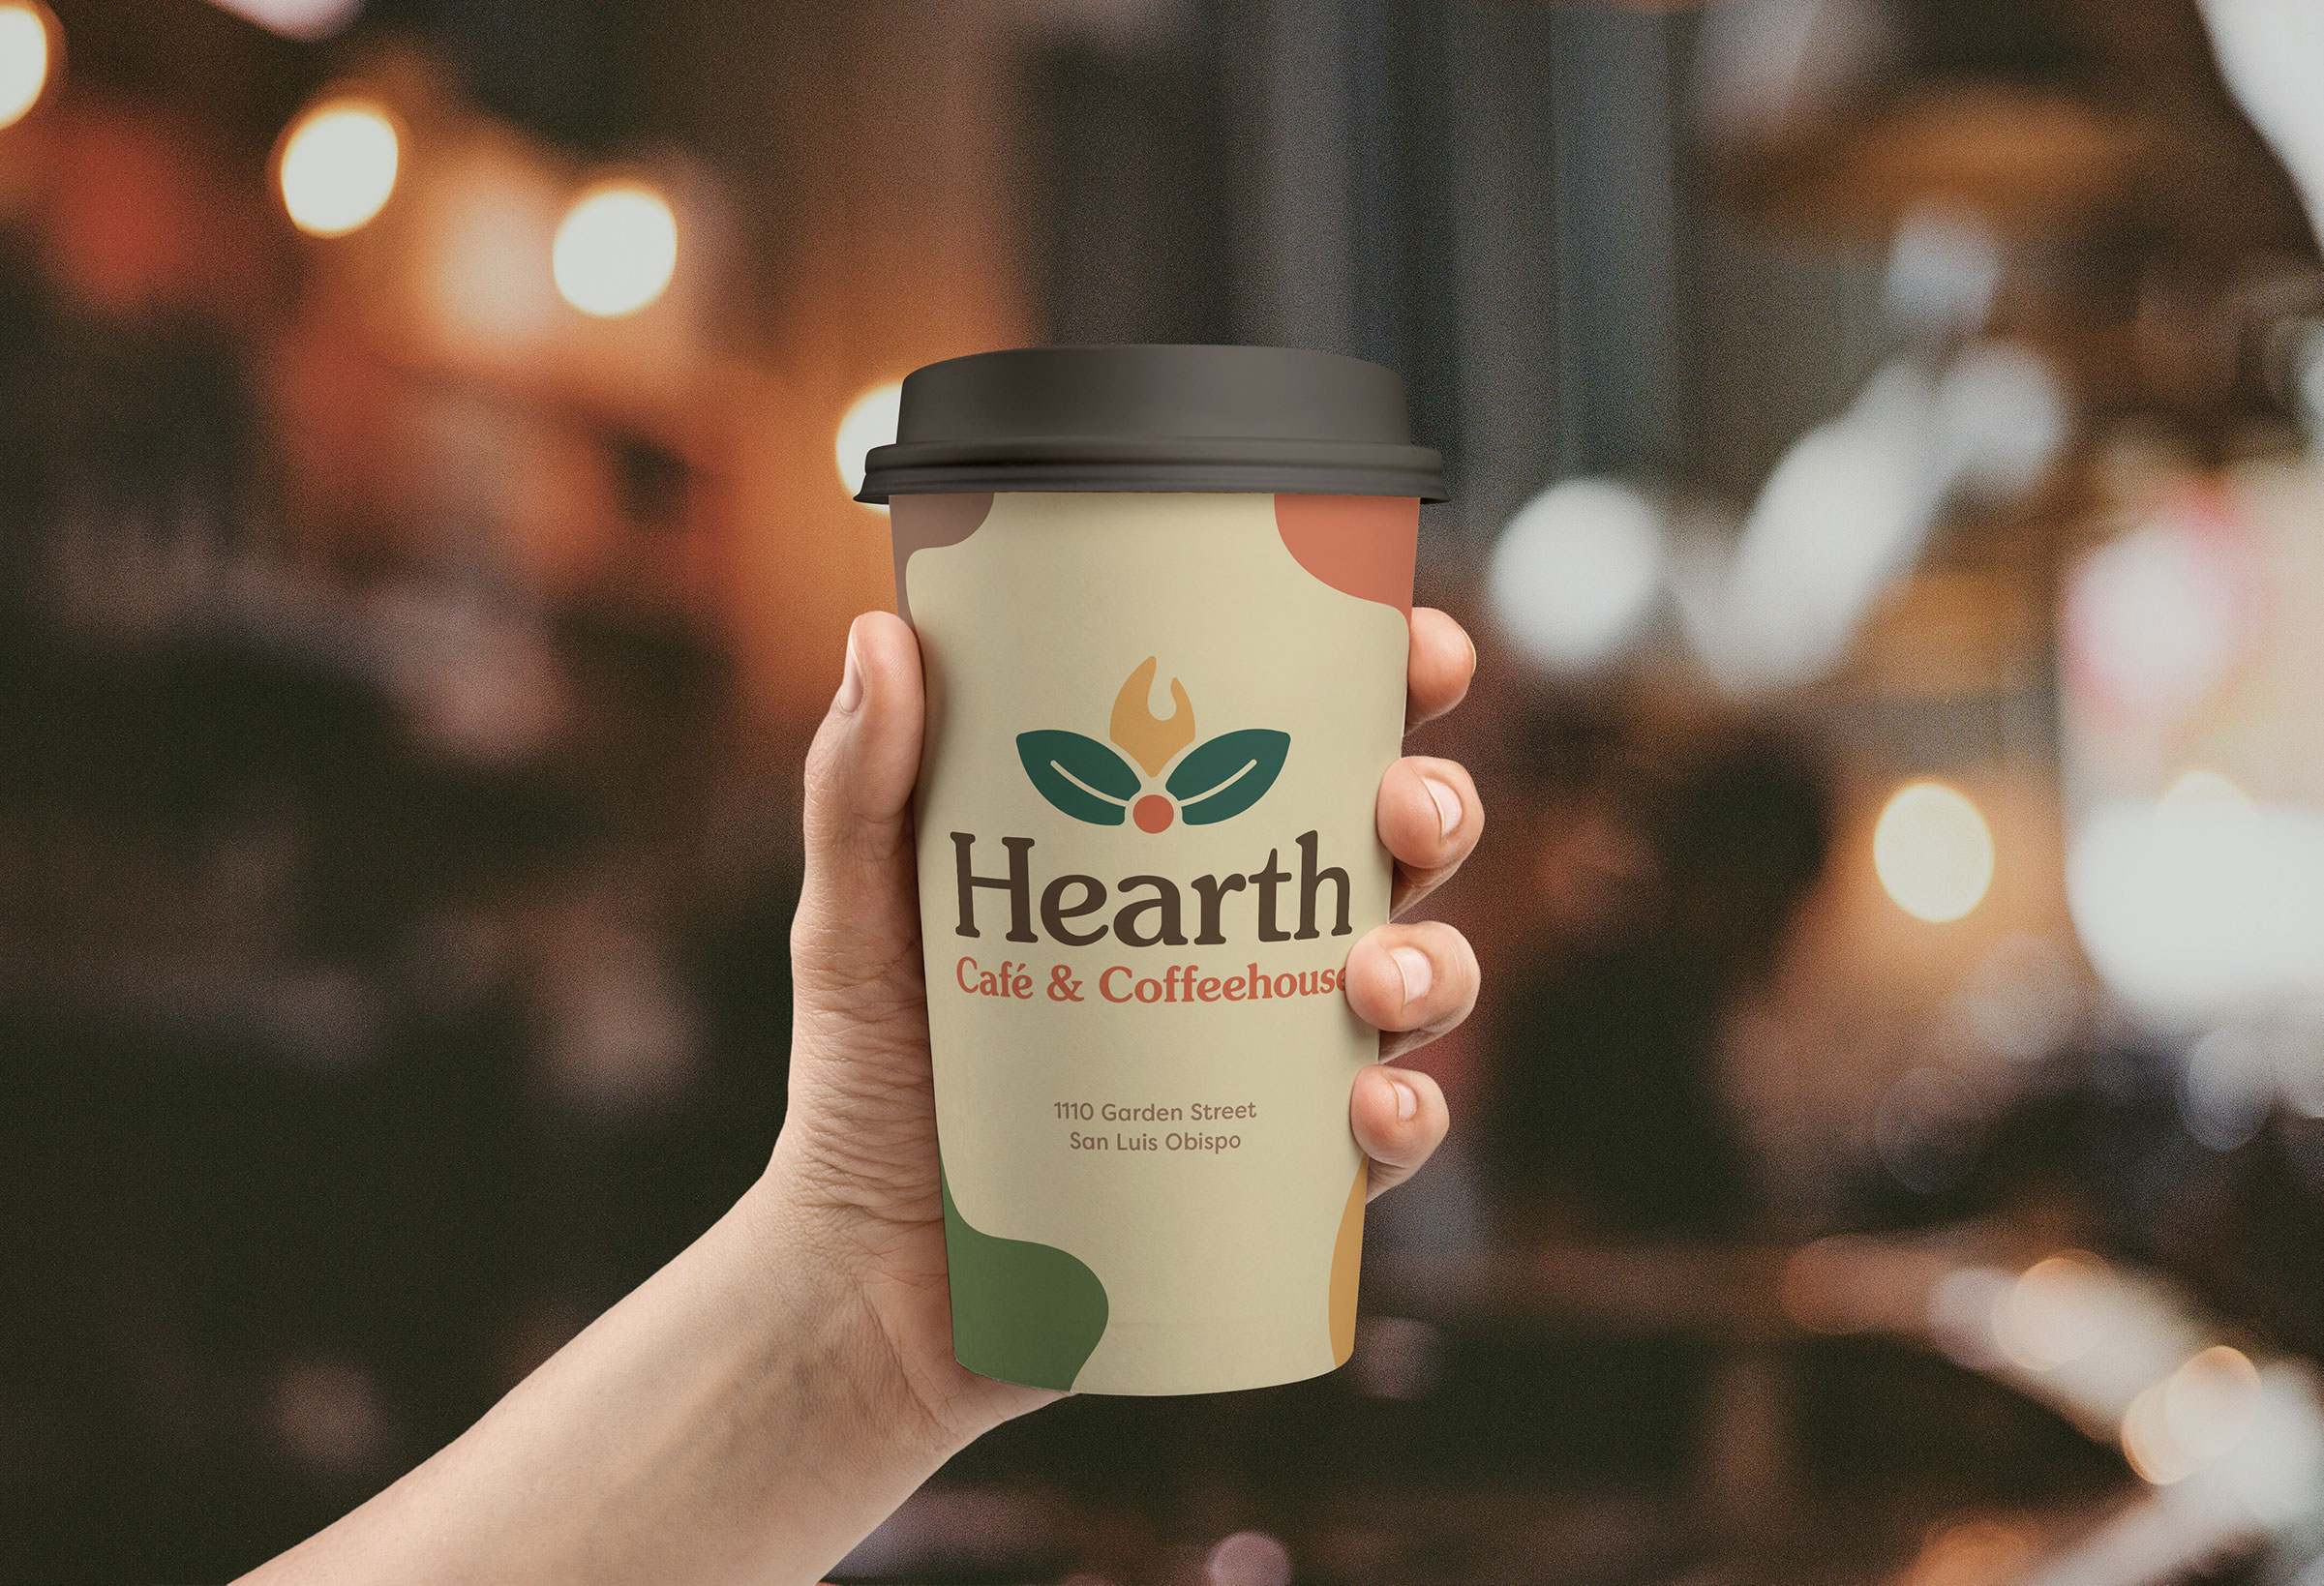 Hearth's rebranded to-go coffee cup, held in a hand against a soft background